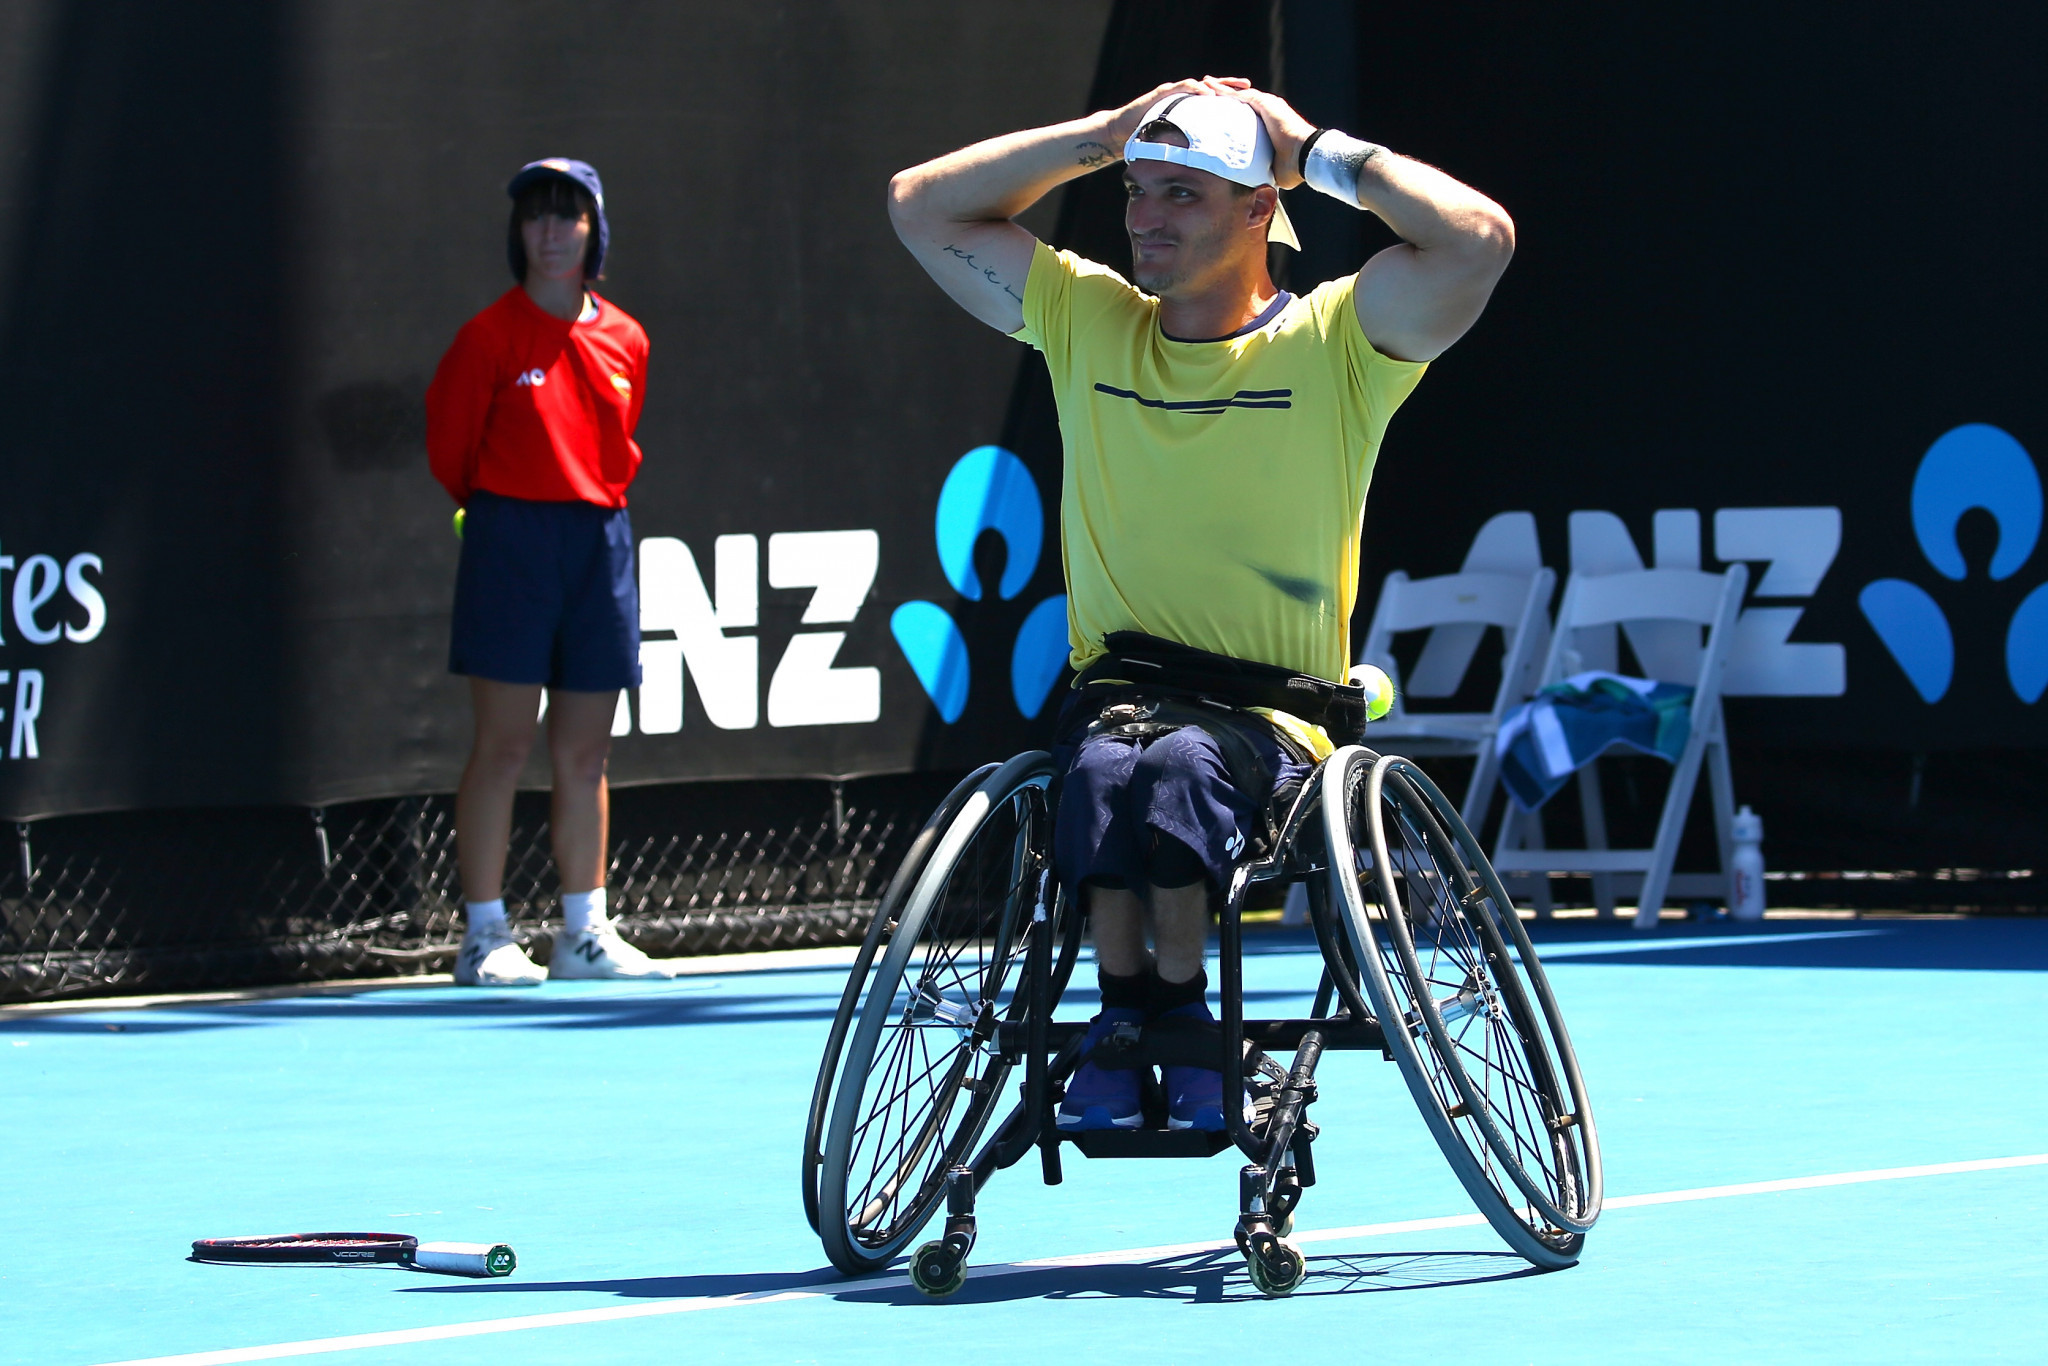 Gustavo Fernandez won the men's wheelchair singles title at the 2019 Australian Open ©Getty Images